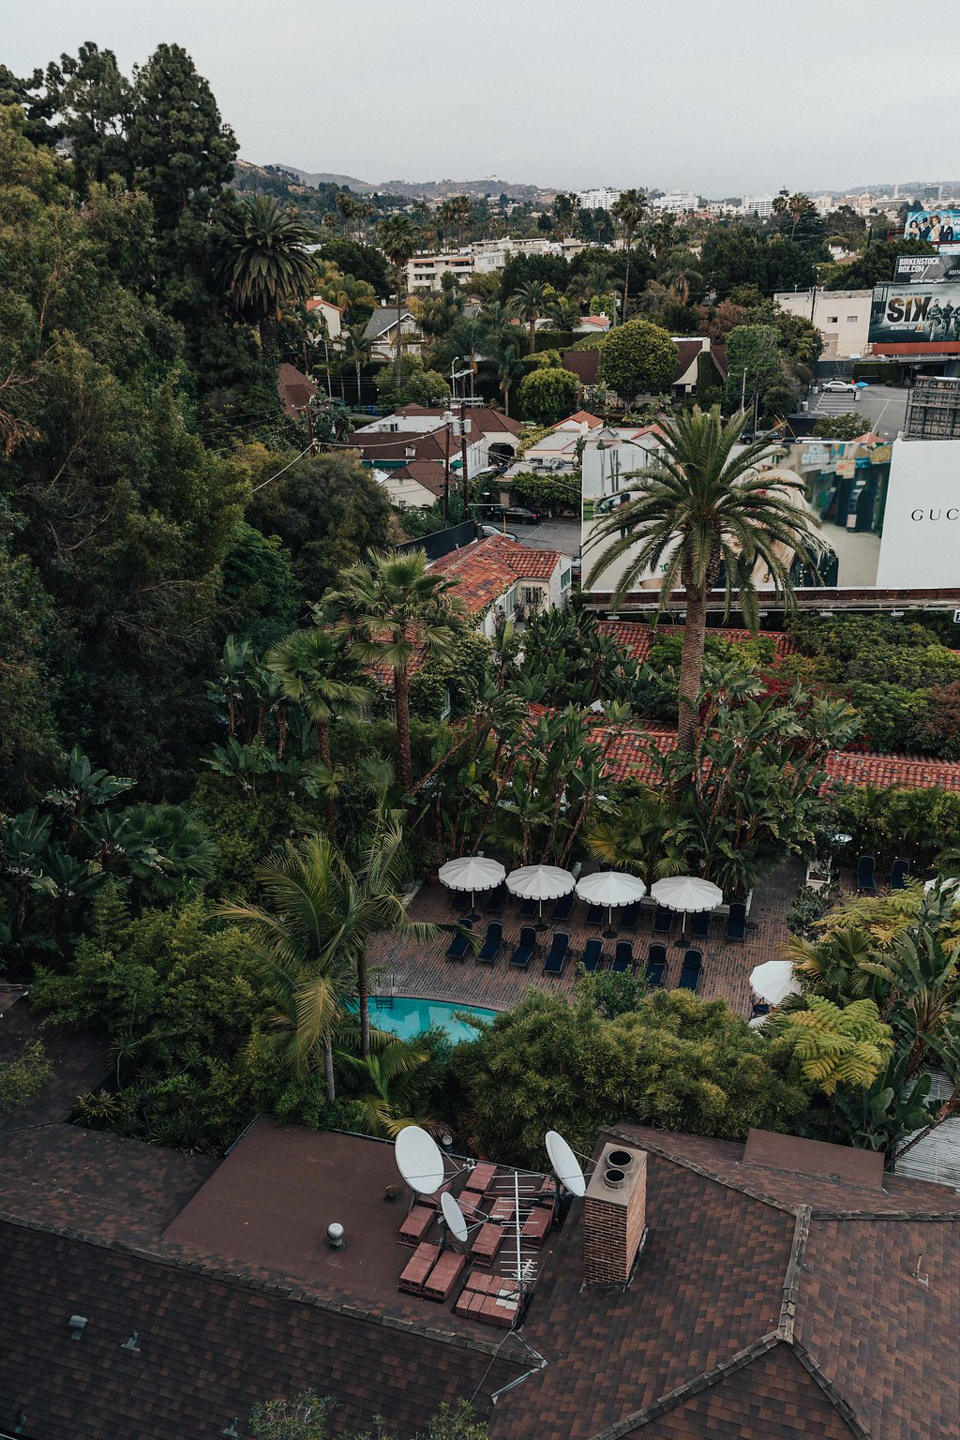 Rooftop views at the Chateau Marmont